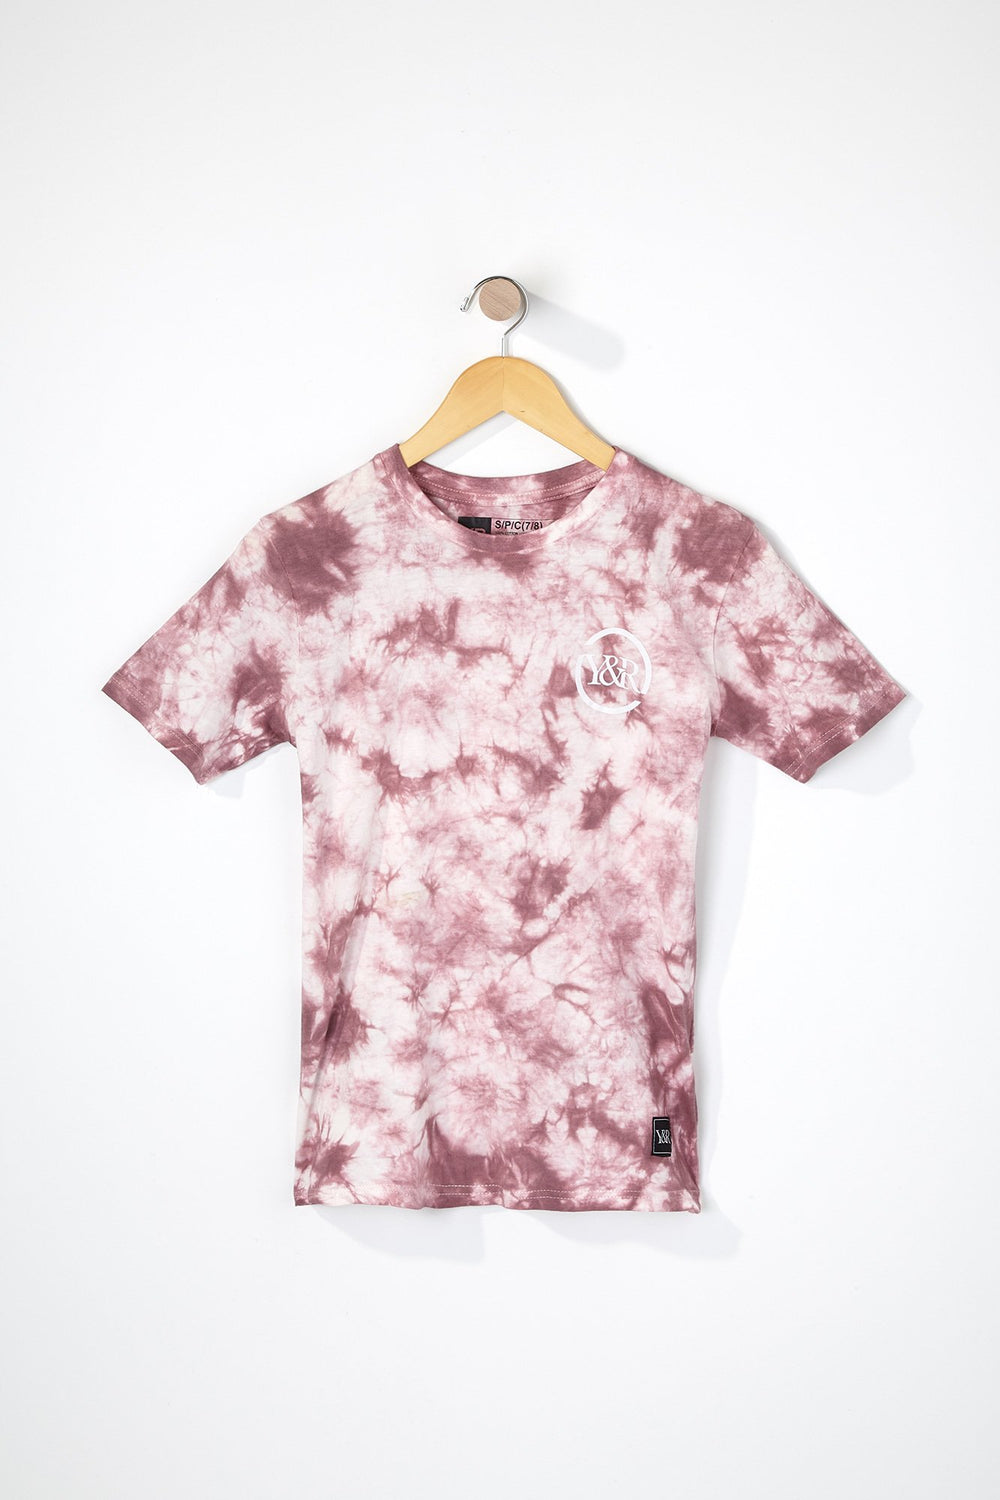 T-Shirt Tie-Dye Young & Reckless Garçon Mauve